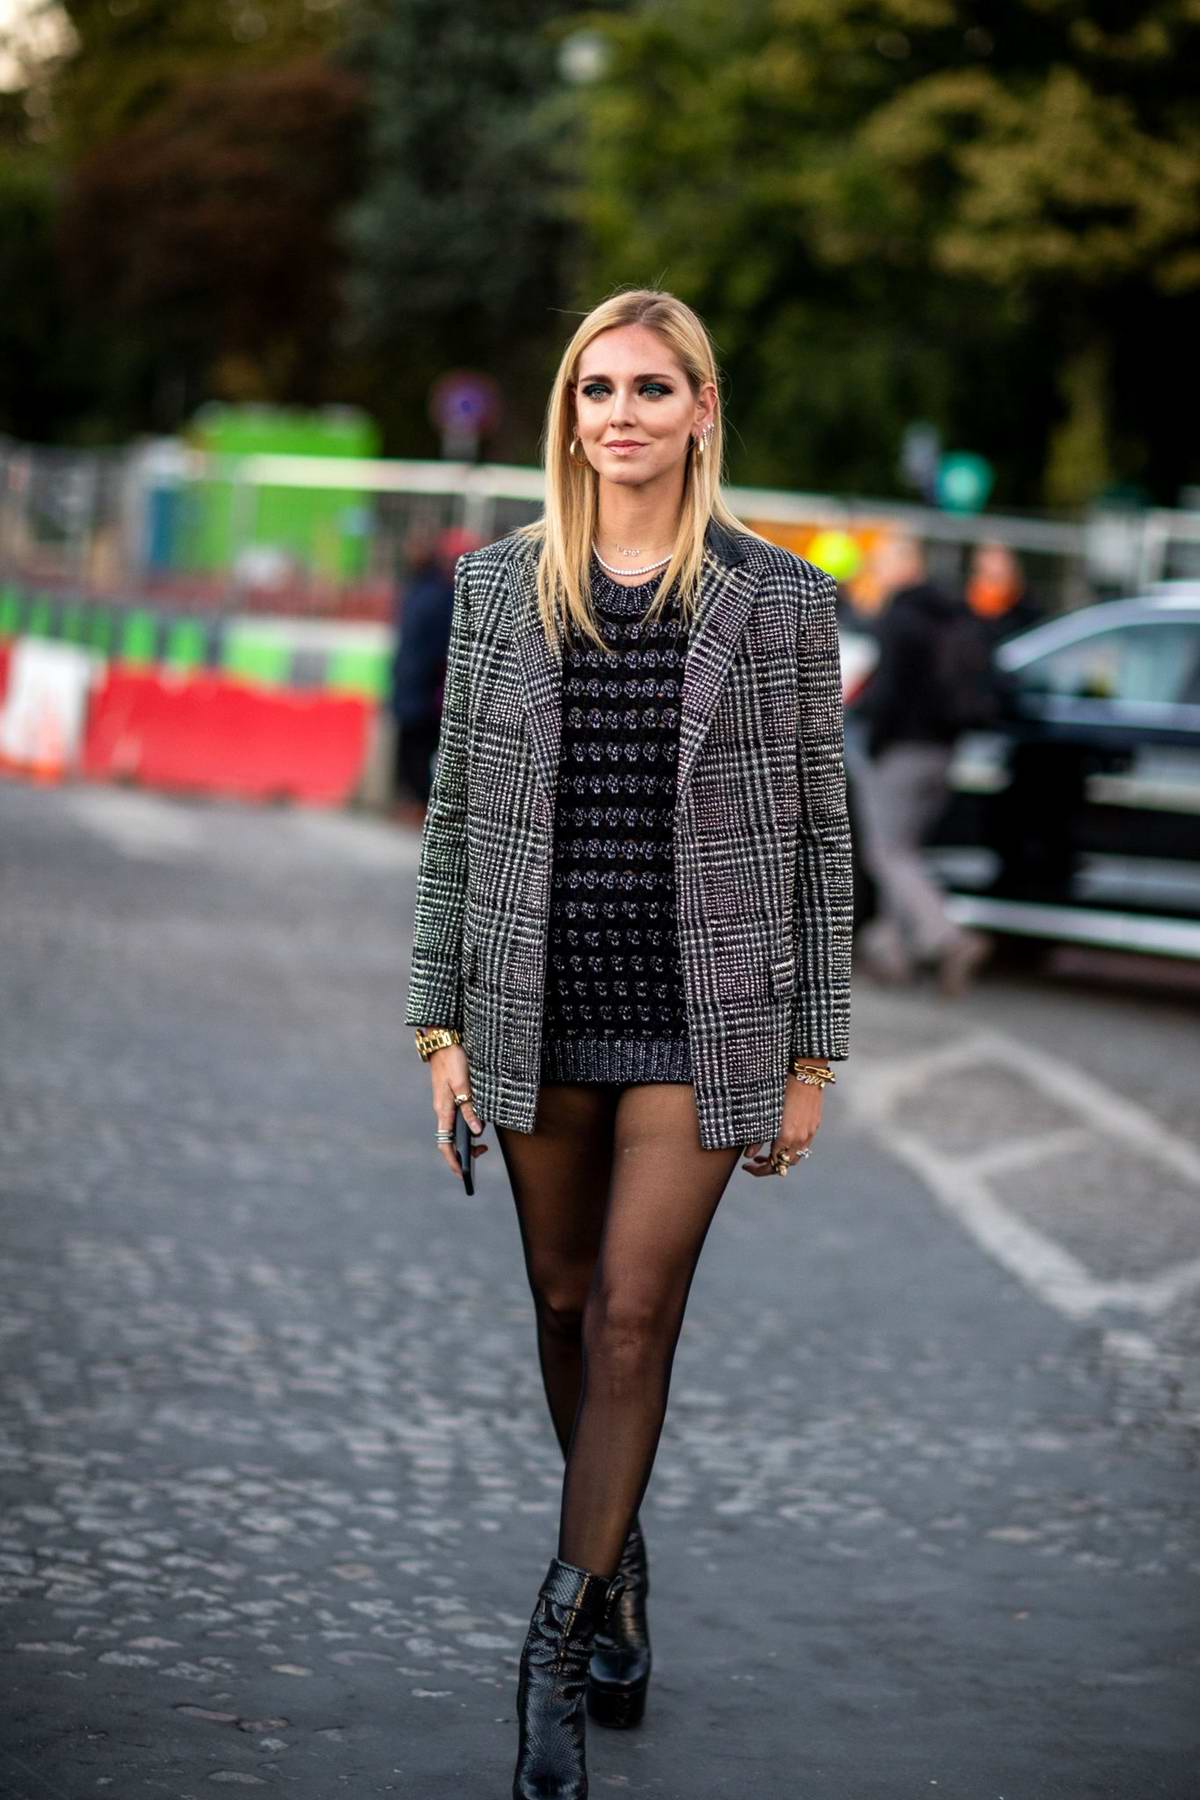 Chiara Ferragni attending Saint Laurent Show during Paris Fashion Week in Paris, France